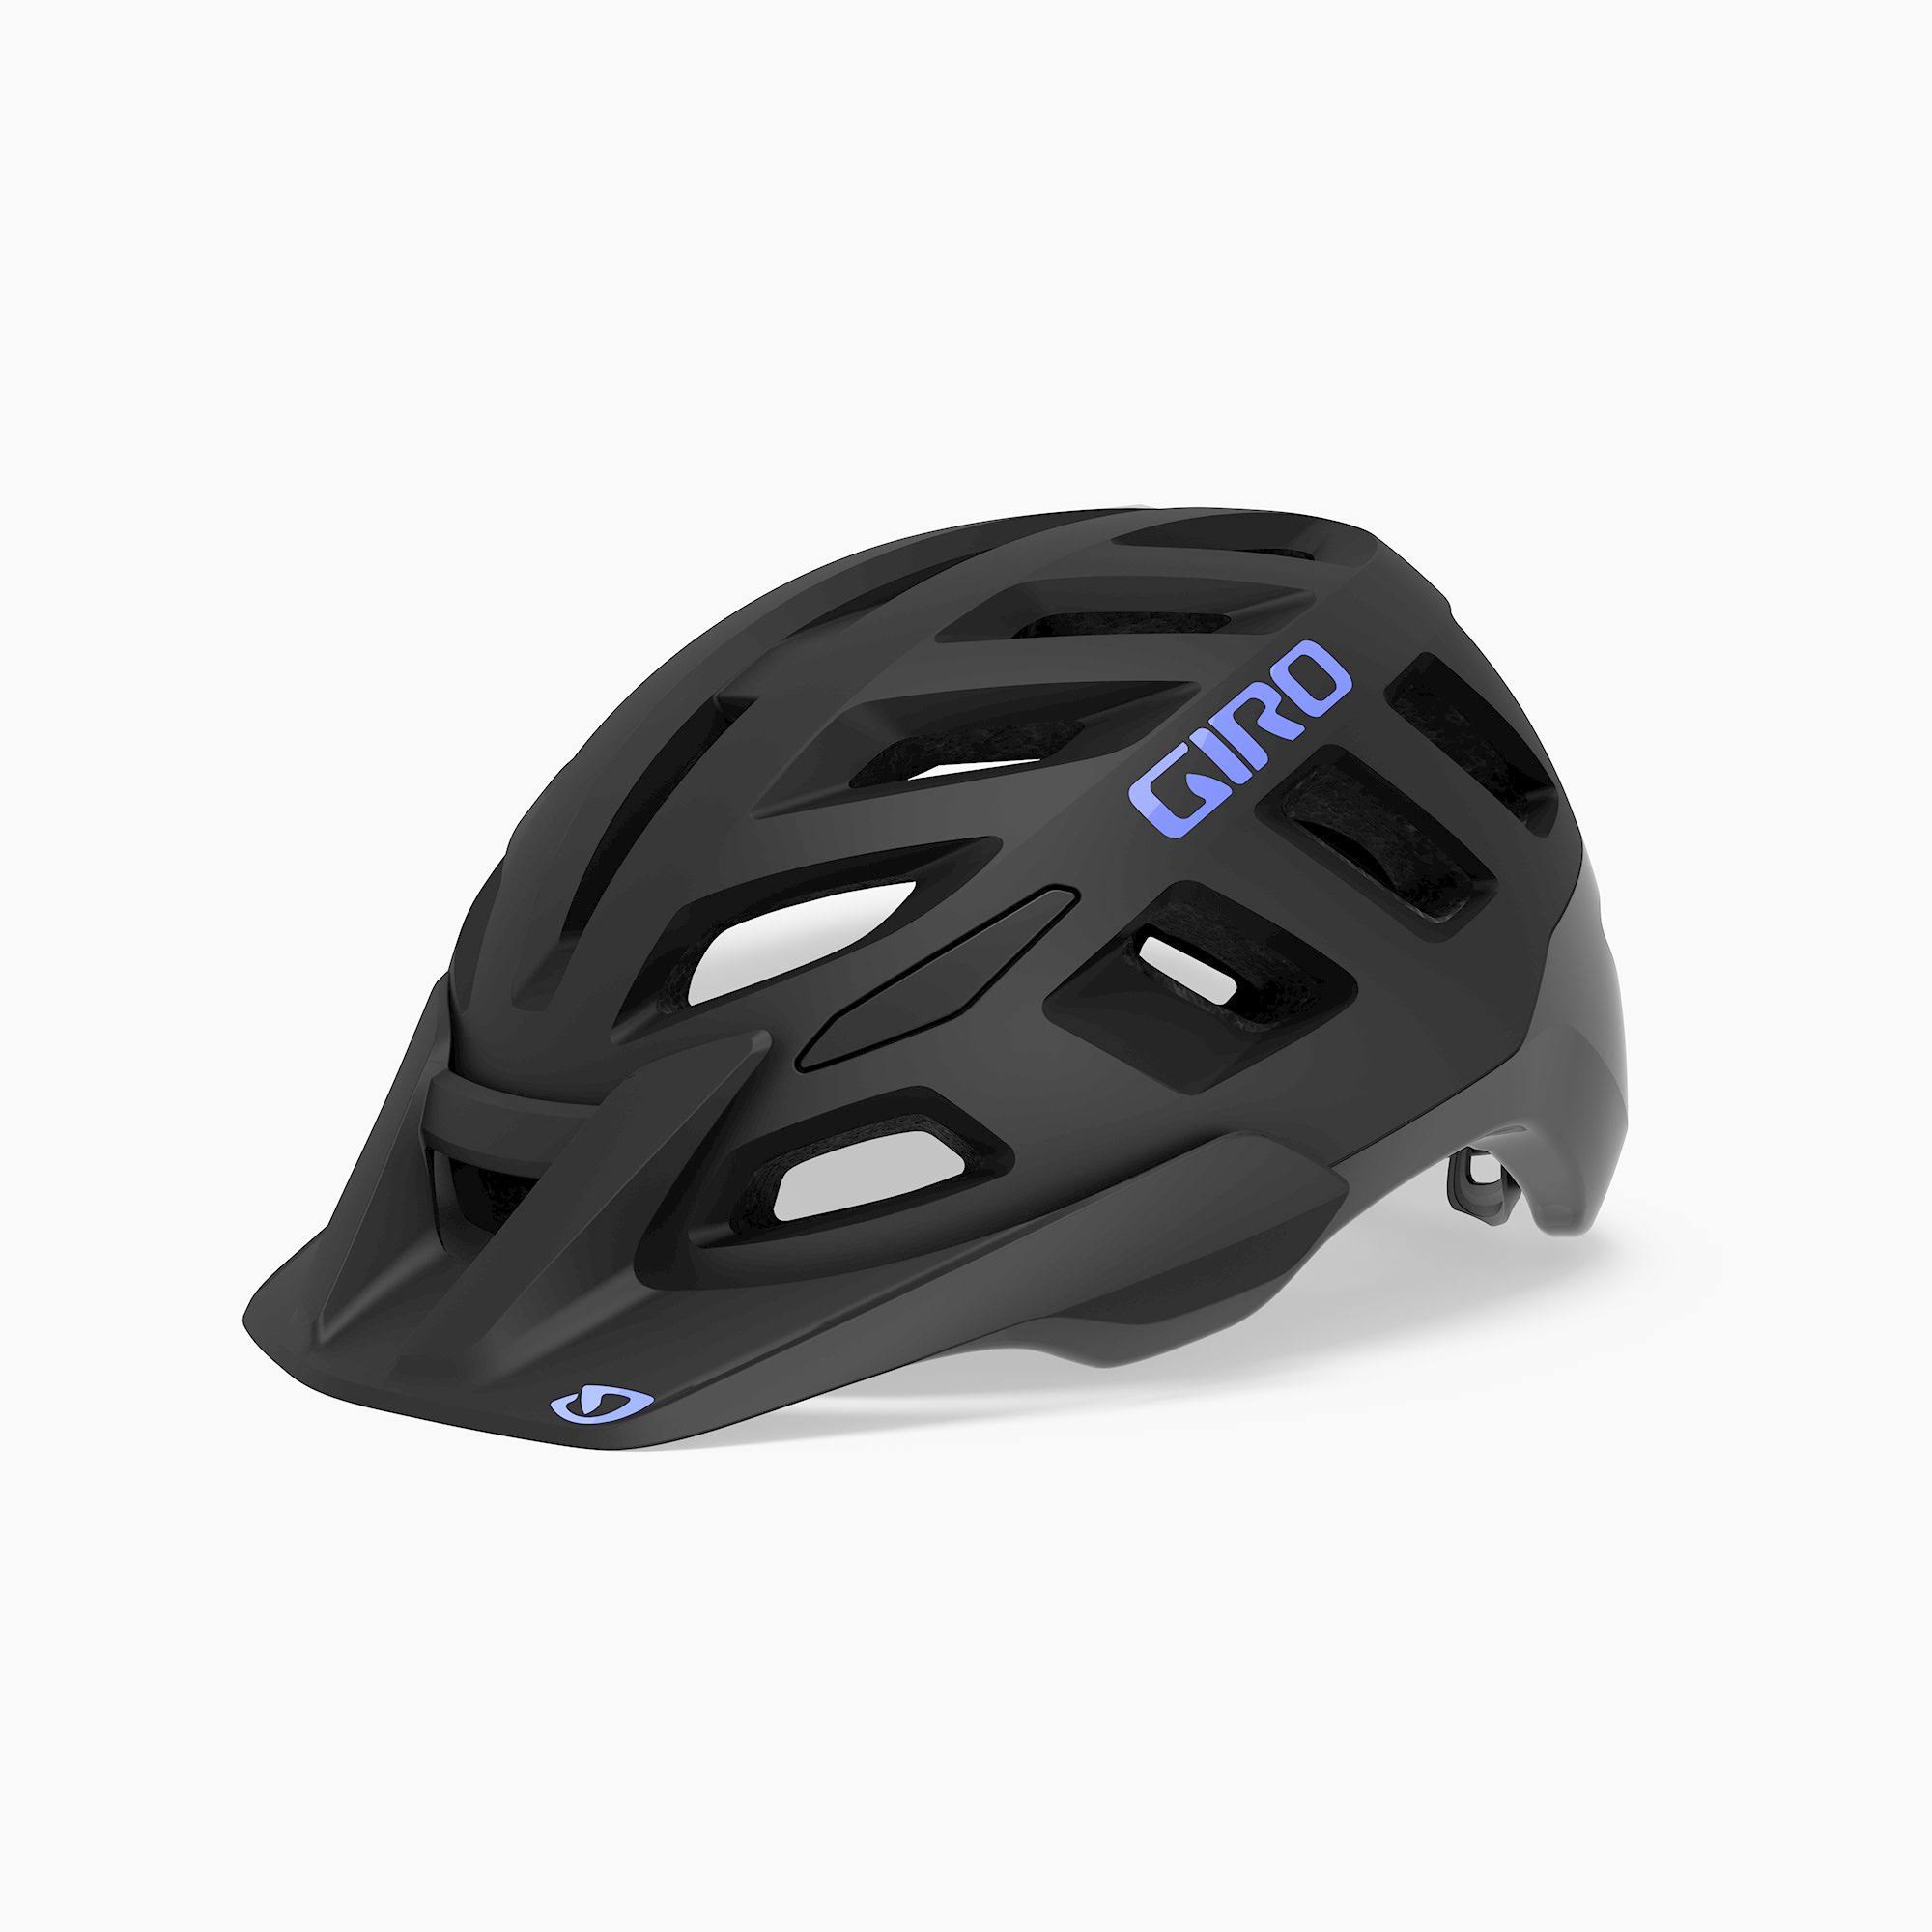 Giro Women's Radix Mips W Helmet - Matte Black/Electric Purple